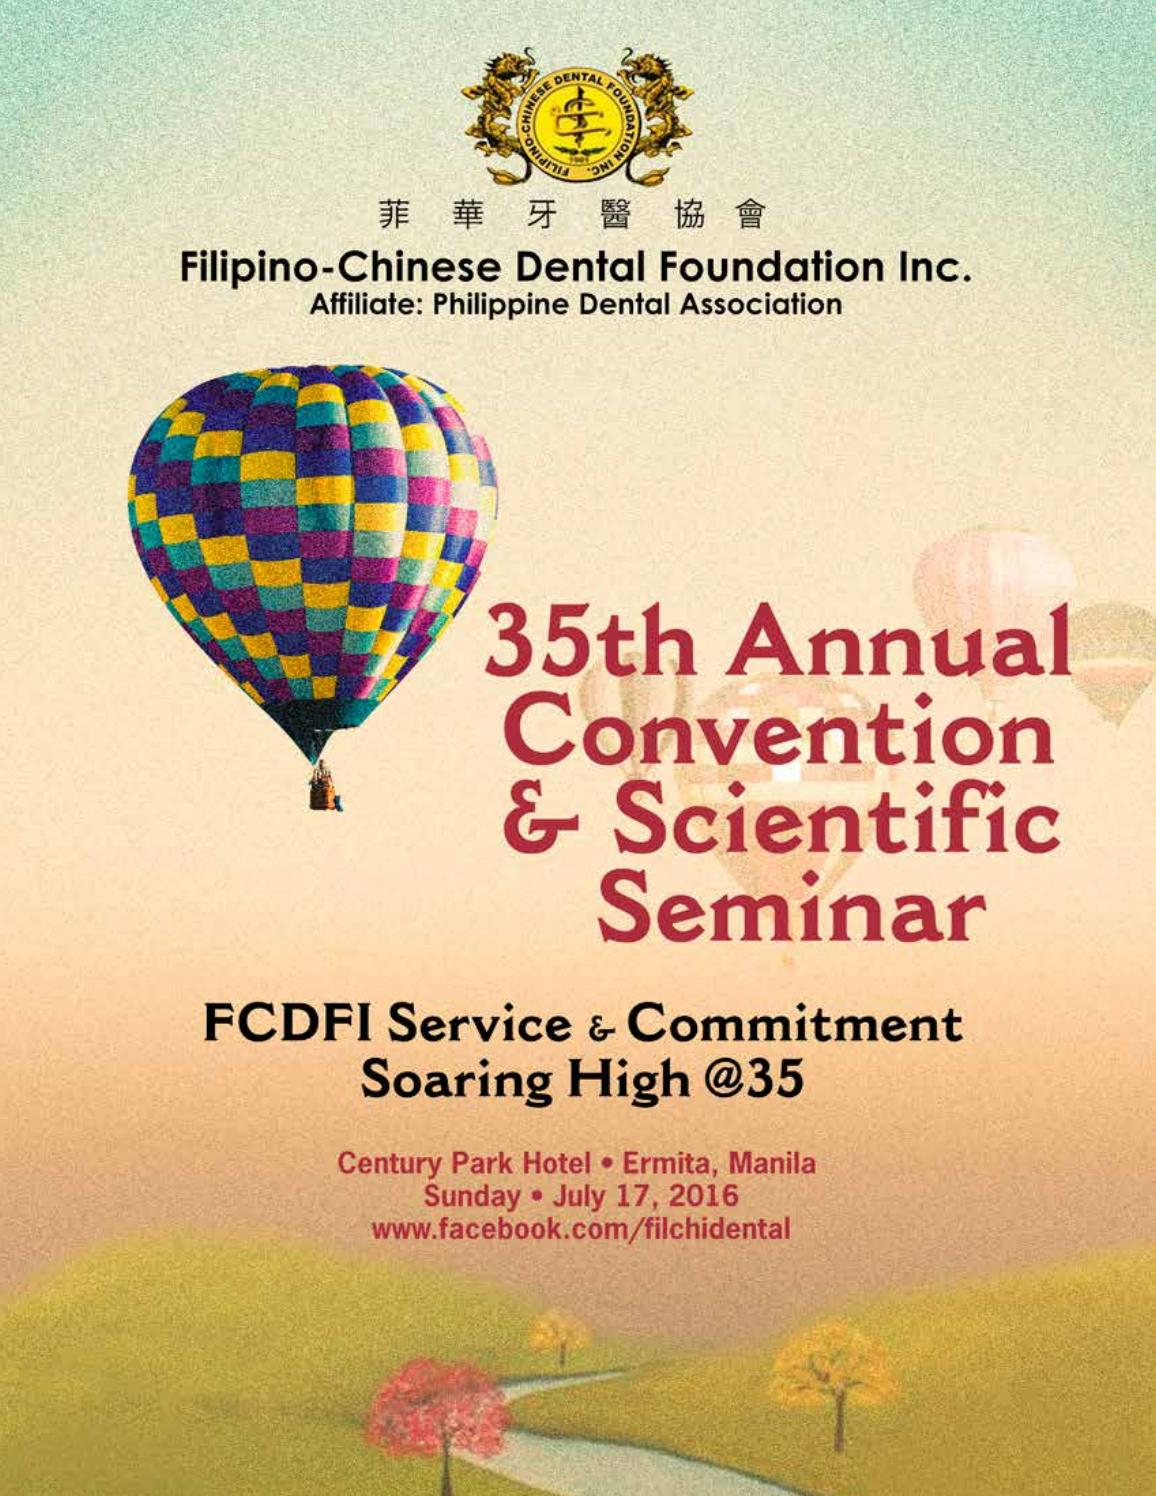 FCDFI Souvenir Program 2016 by Jimmy Hilario - issuu